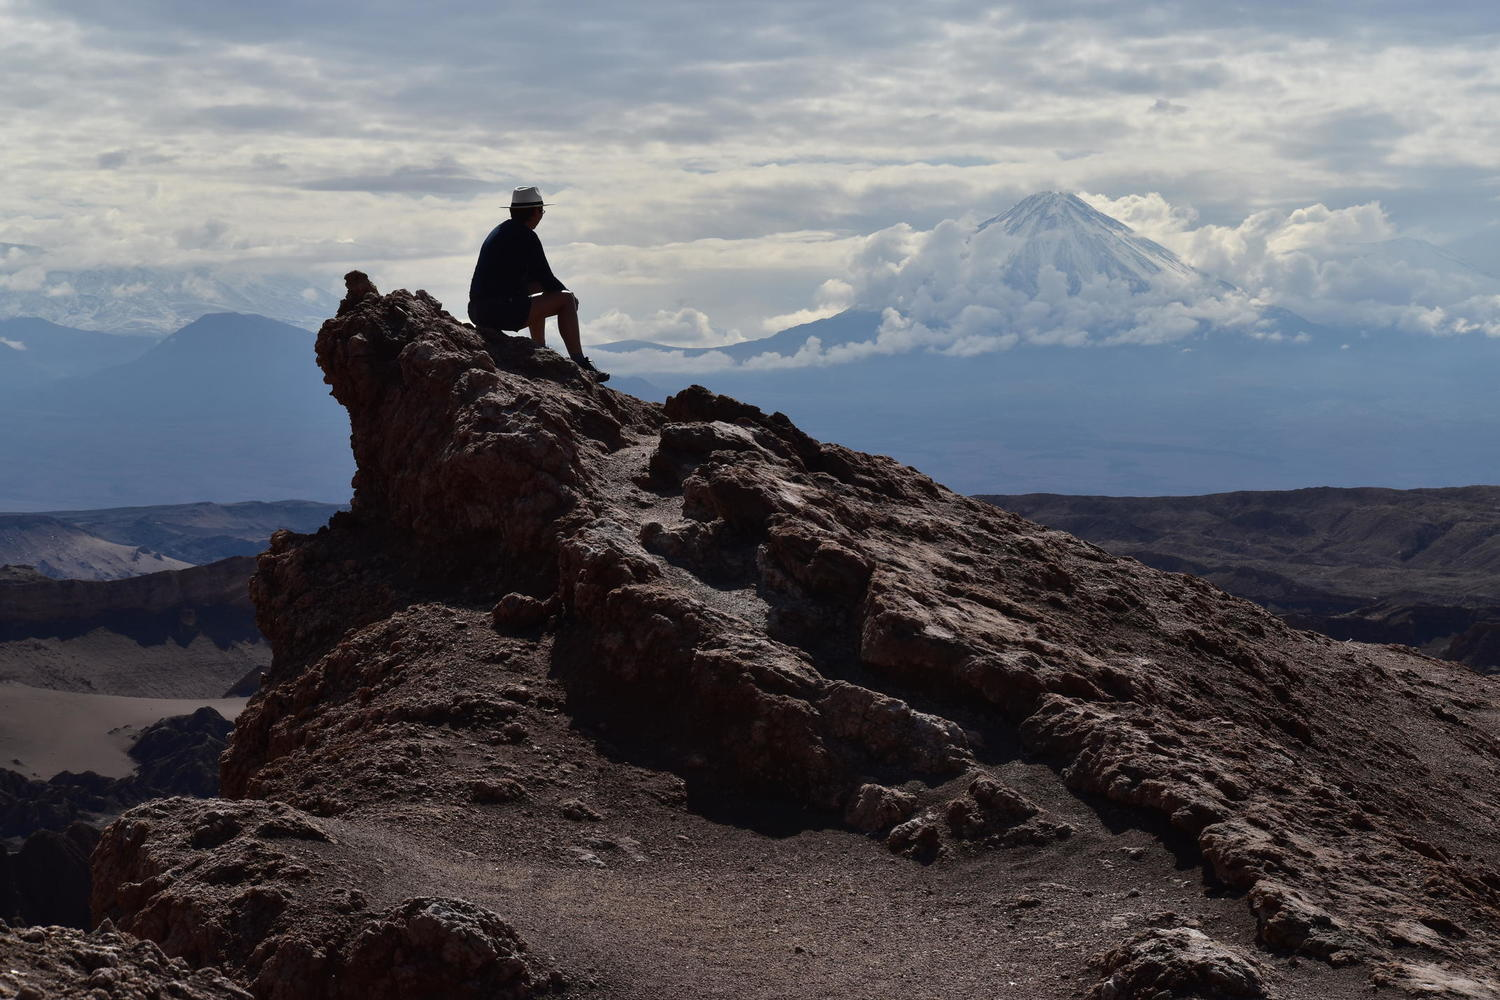 Looking across to Licancabur in Chile's Atacama